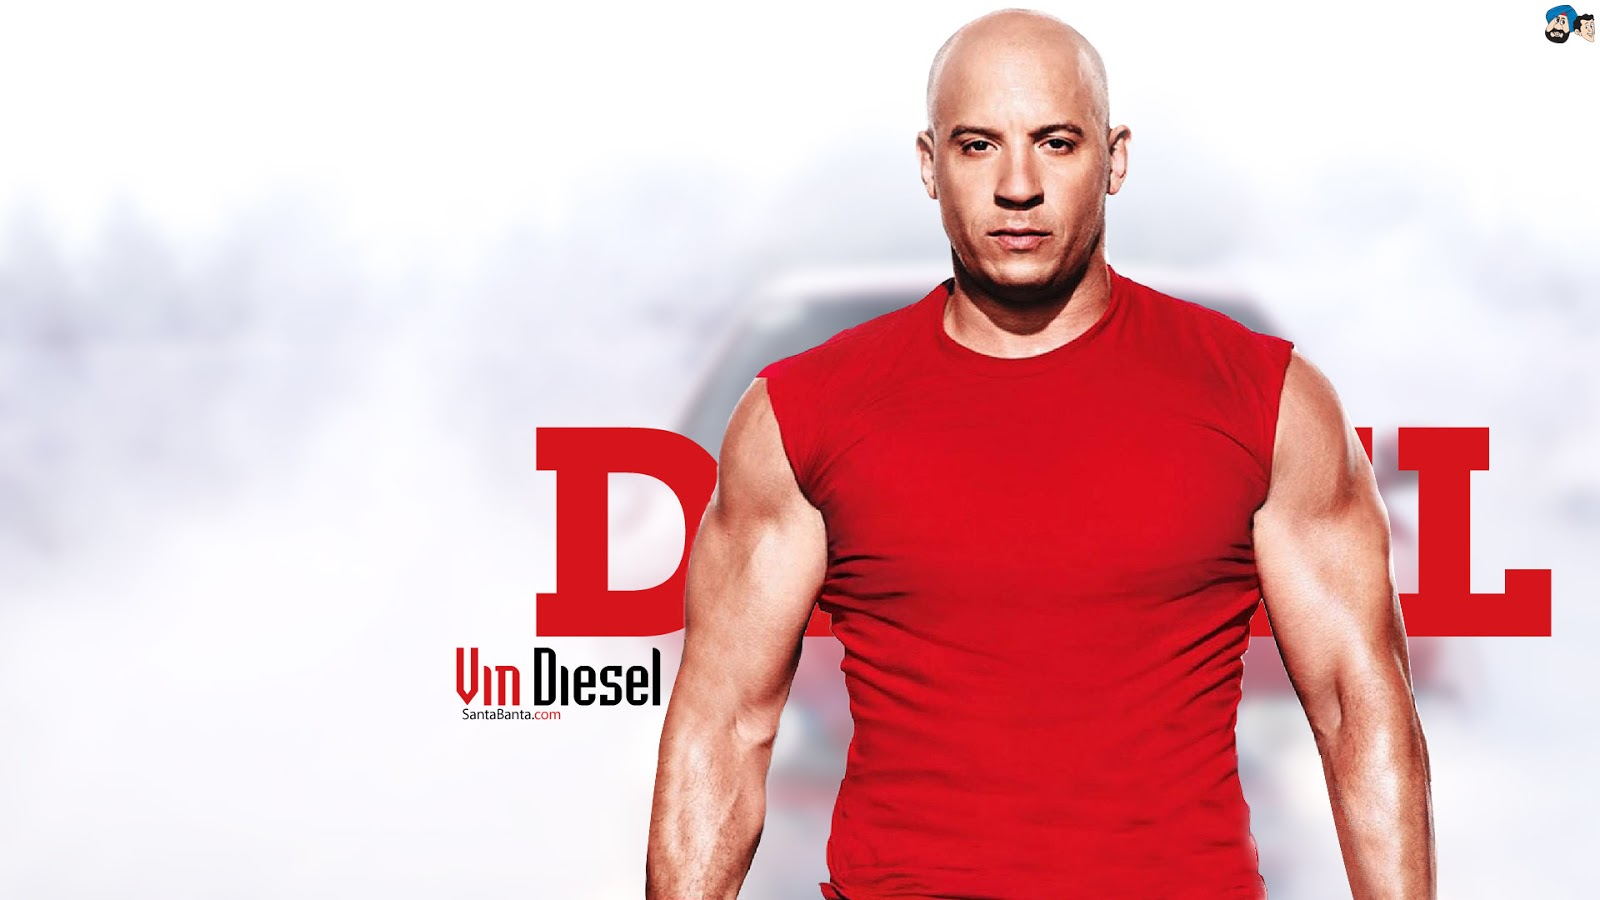 Vin Diesel Wallpapers Vin Diesel HD Wallpapers Free Wallpaper